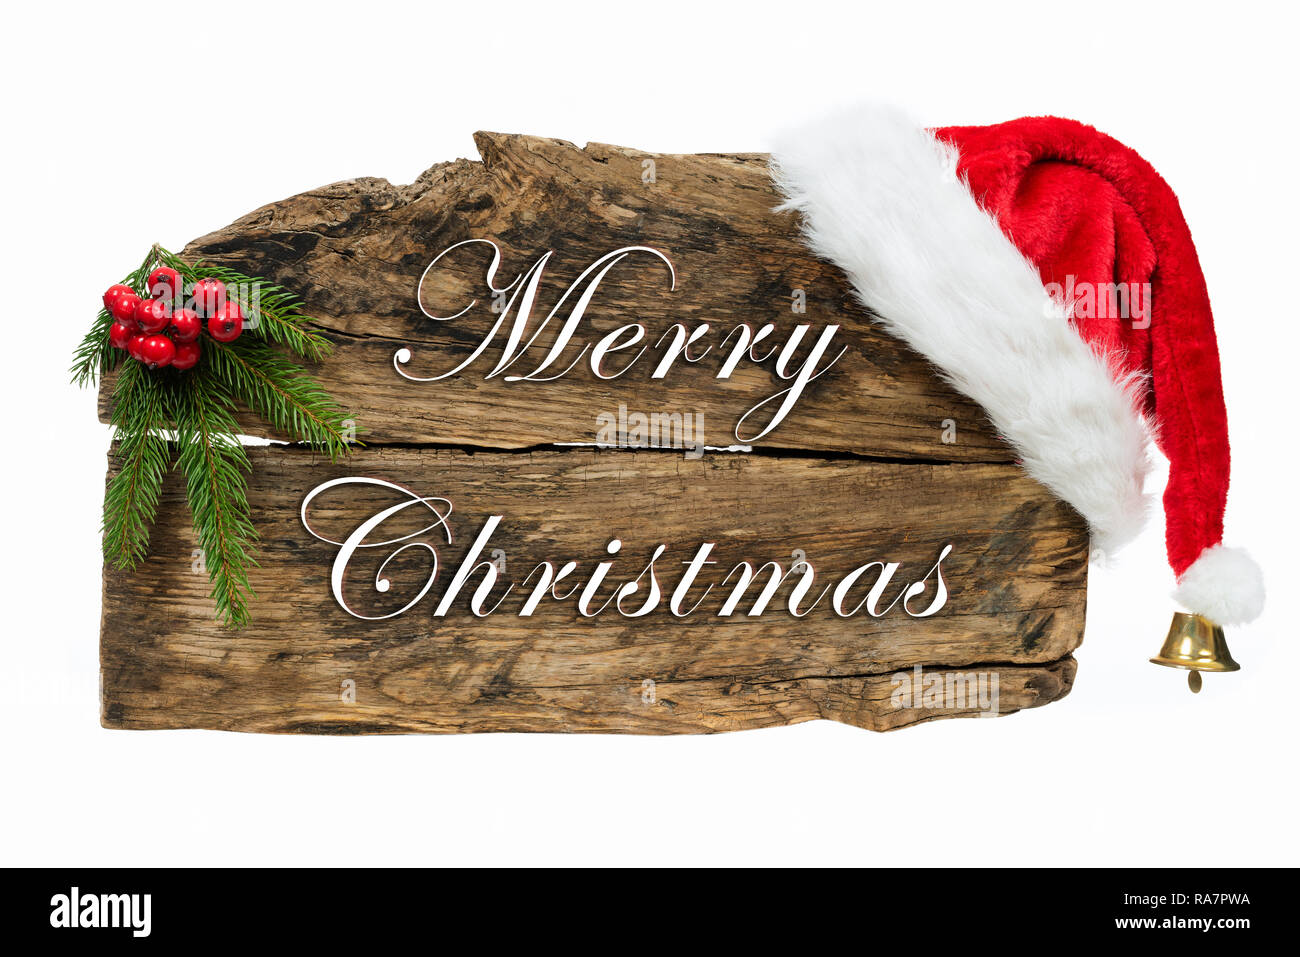 Christmas decoration - old wooden board sign with Santa hat and spruce twig on white background - Stock Image